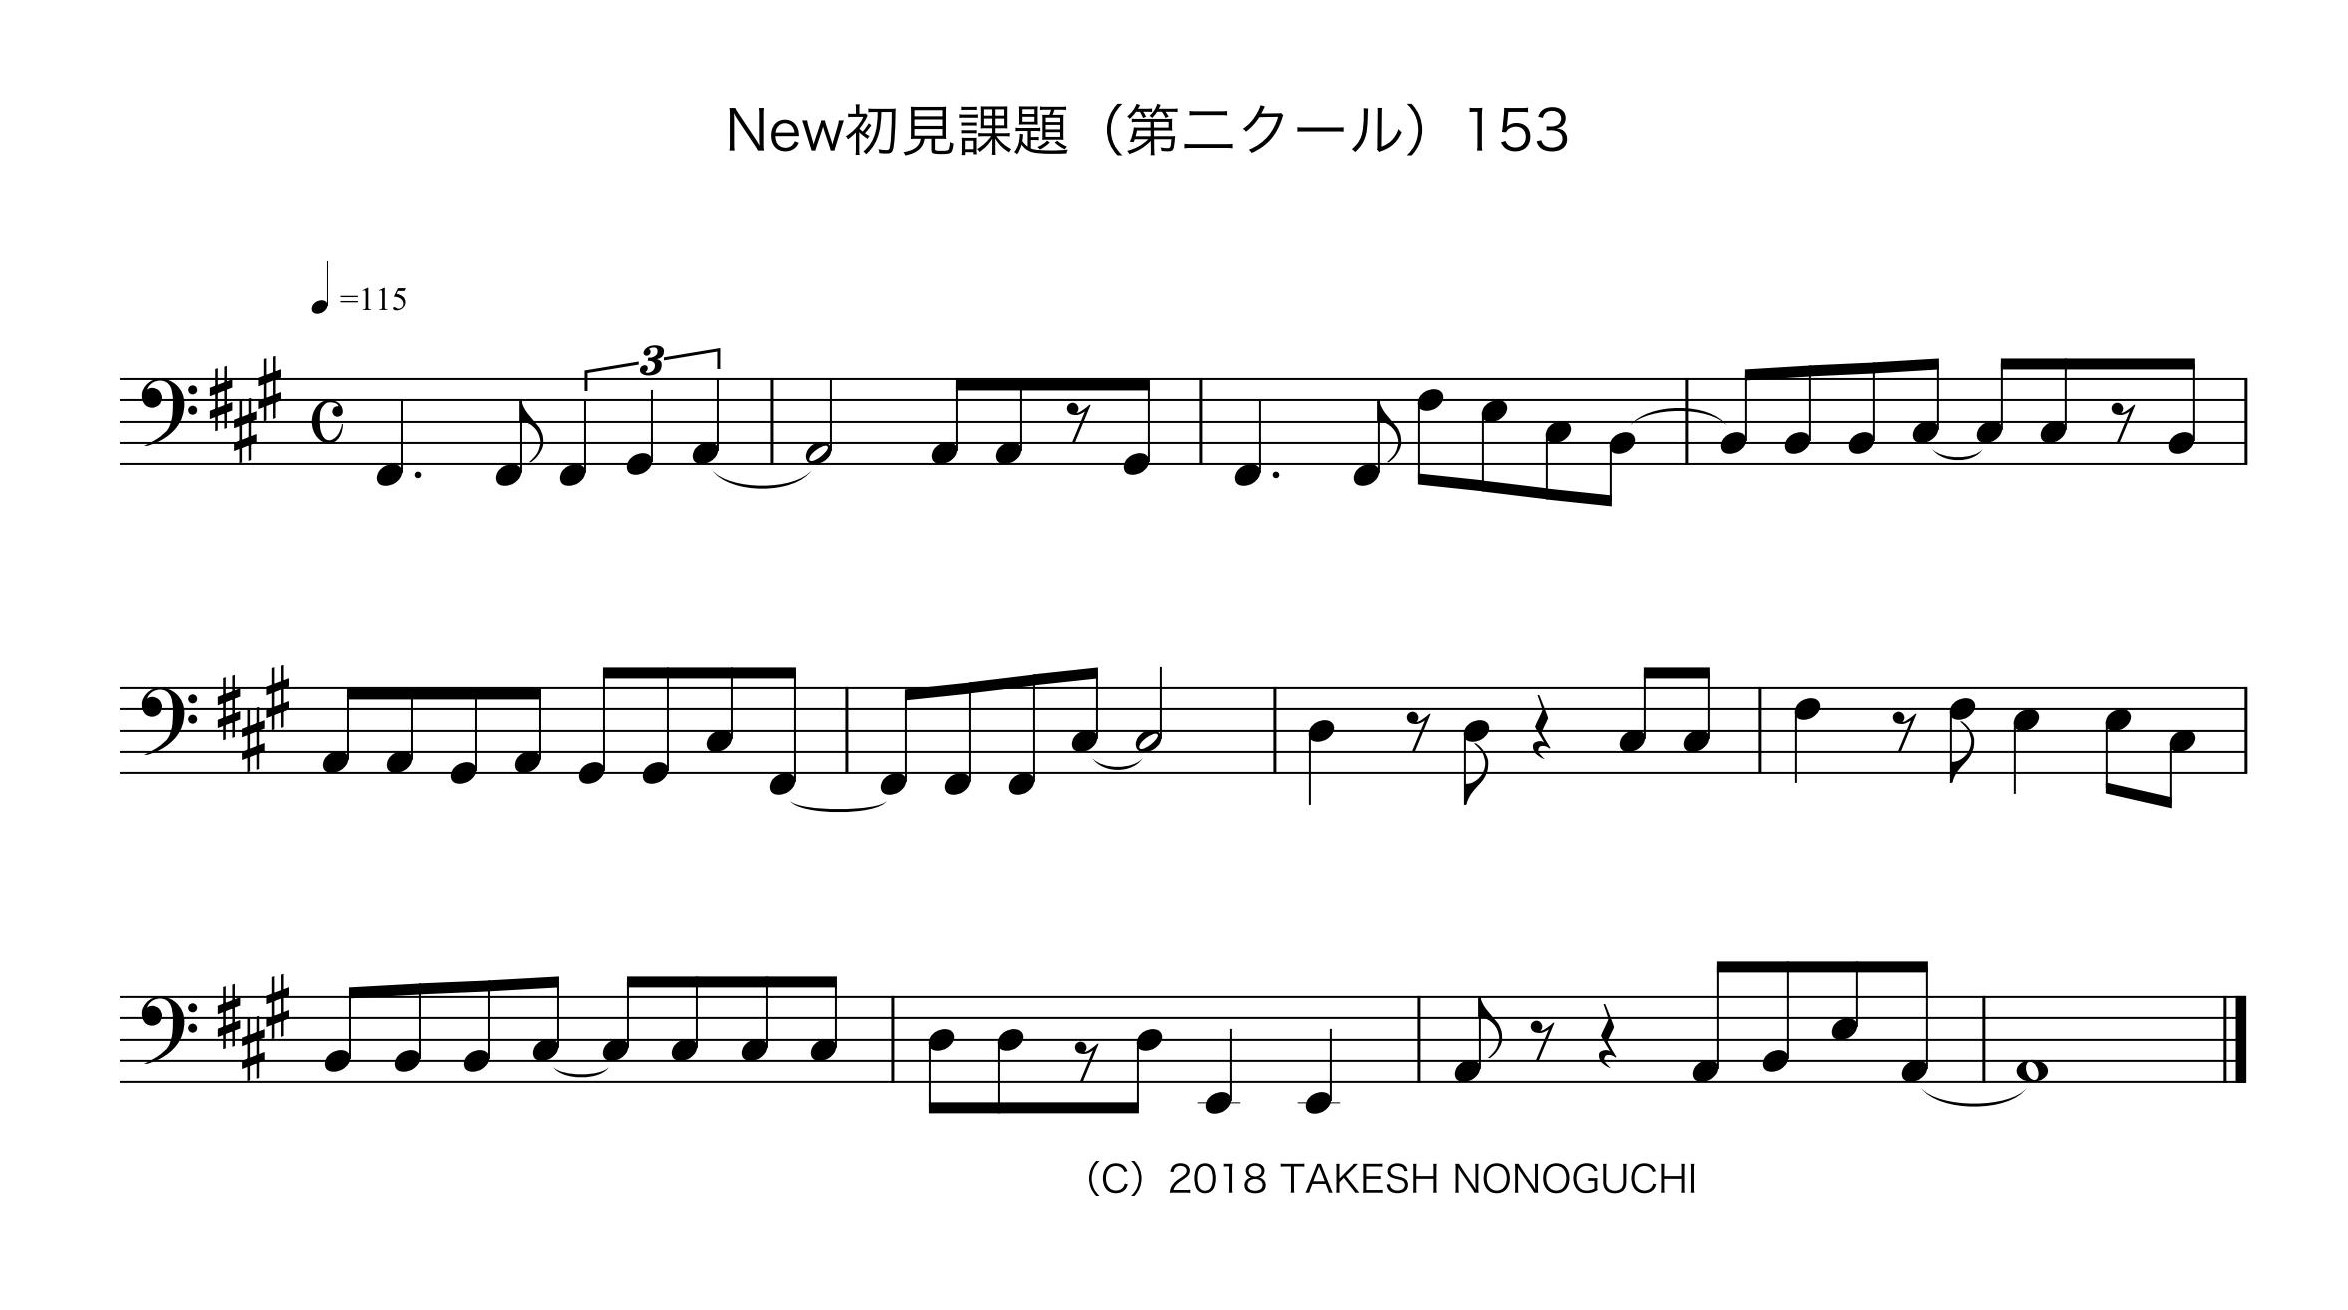 NEW初見課題(第二クール)NO.153